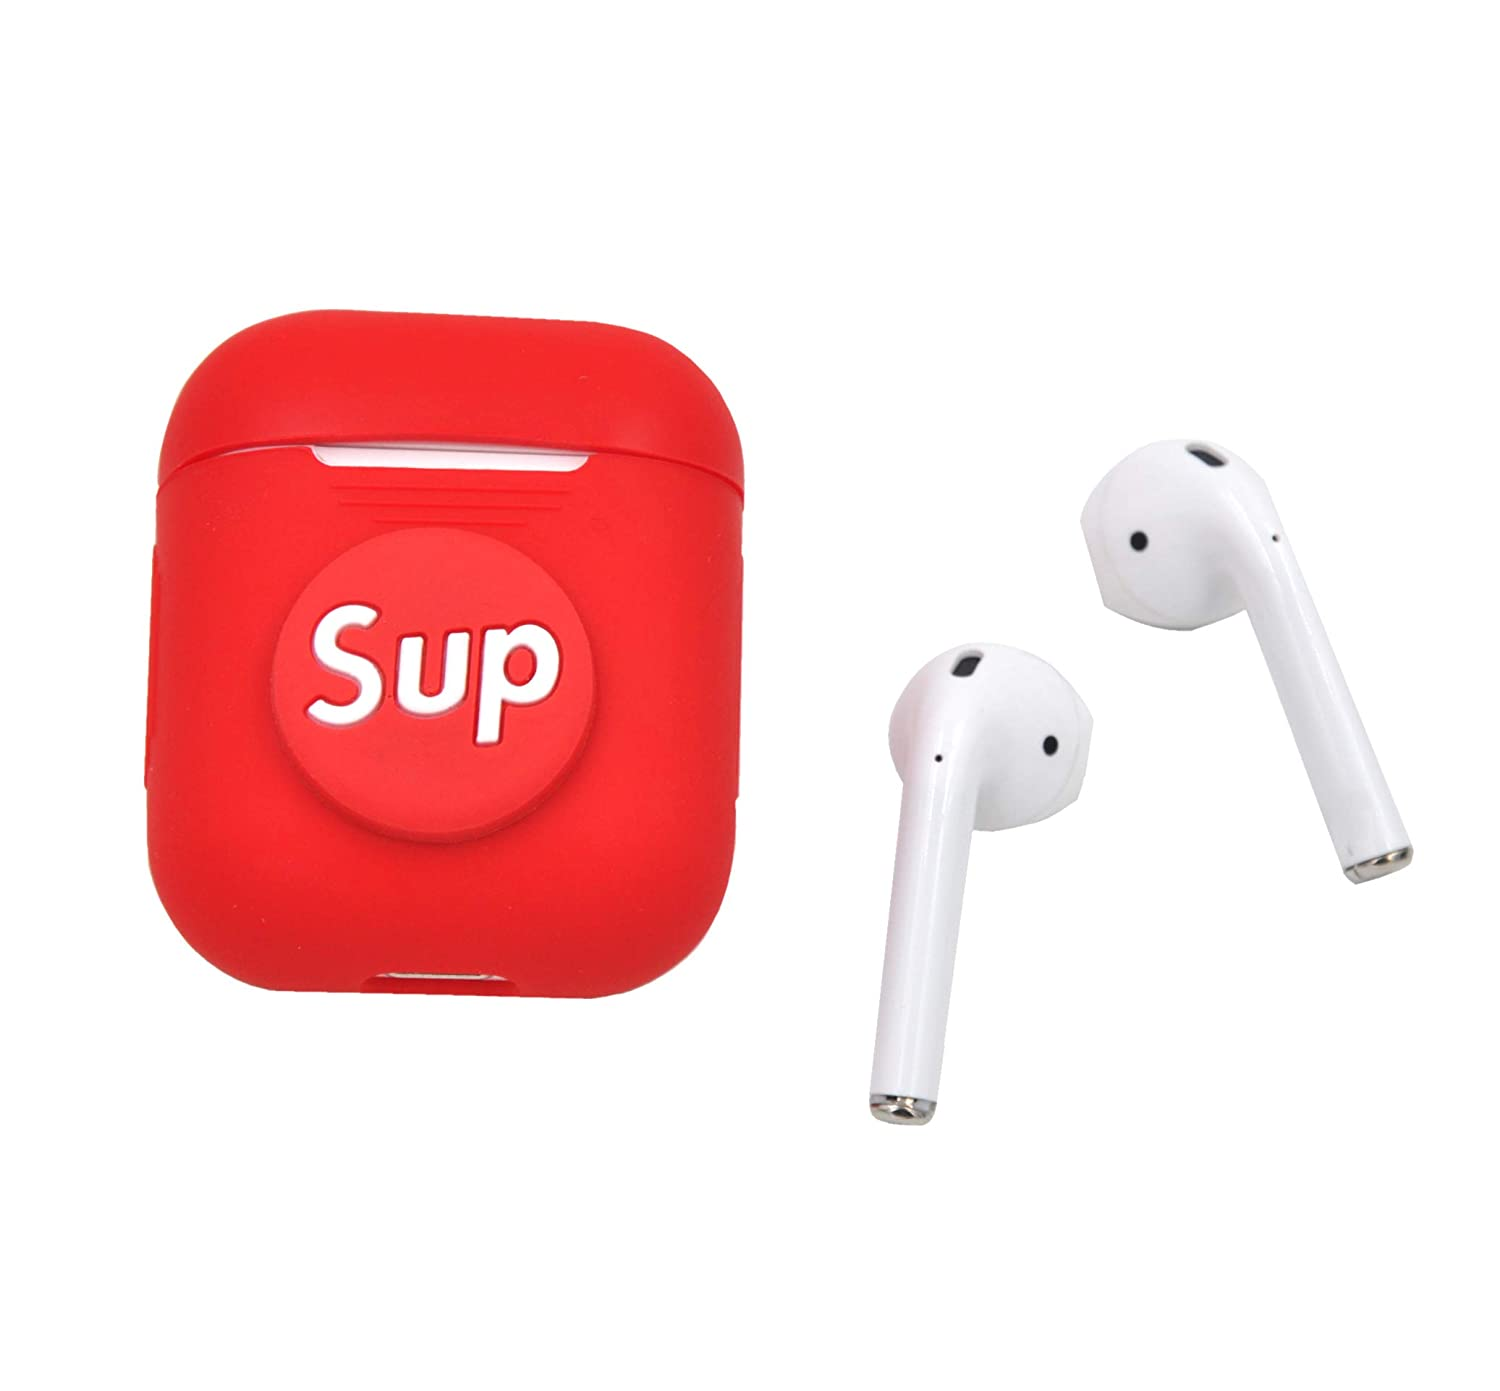 D MagicSkin Compatible for AirPods Case Soft Silicone Shockproof Case Cover and Skin for AirPods Charging Case